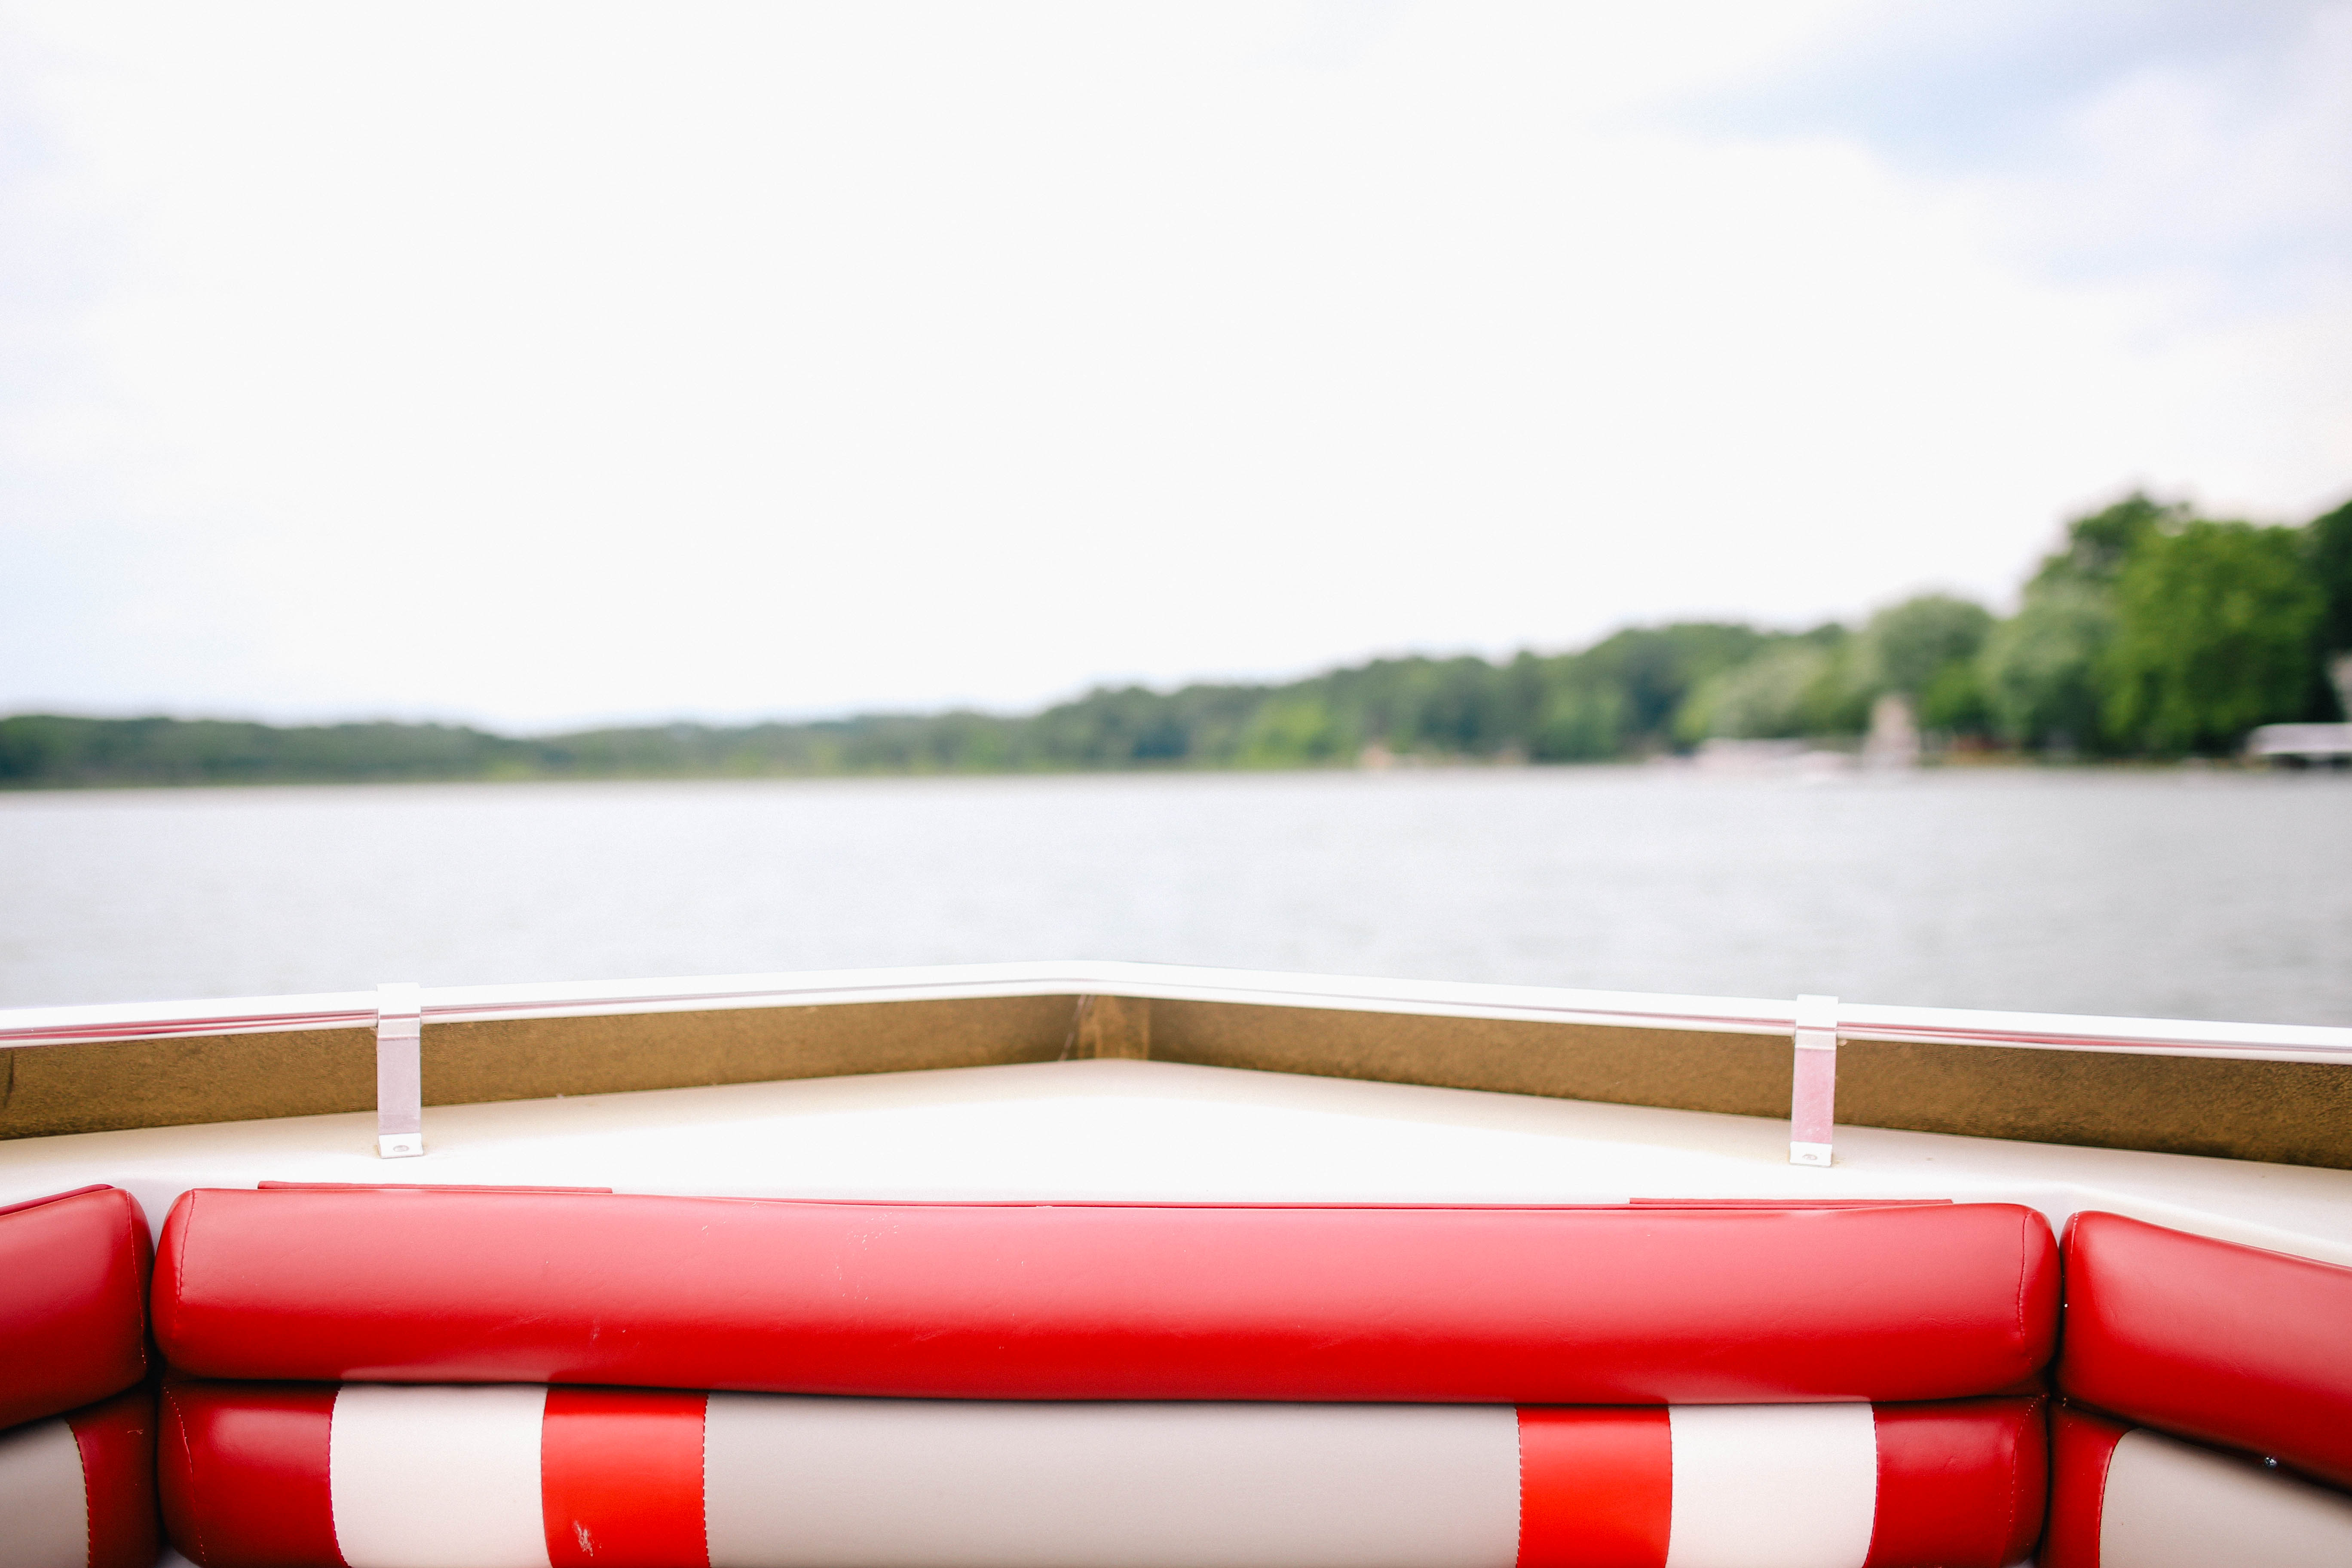 this is the stern of a boat, not an email